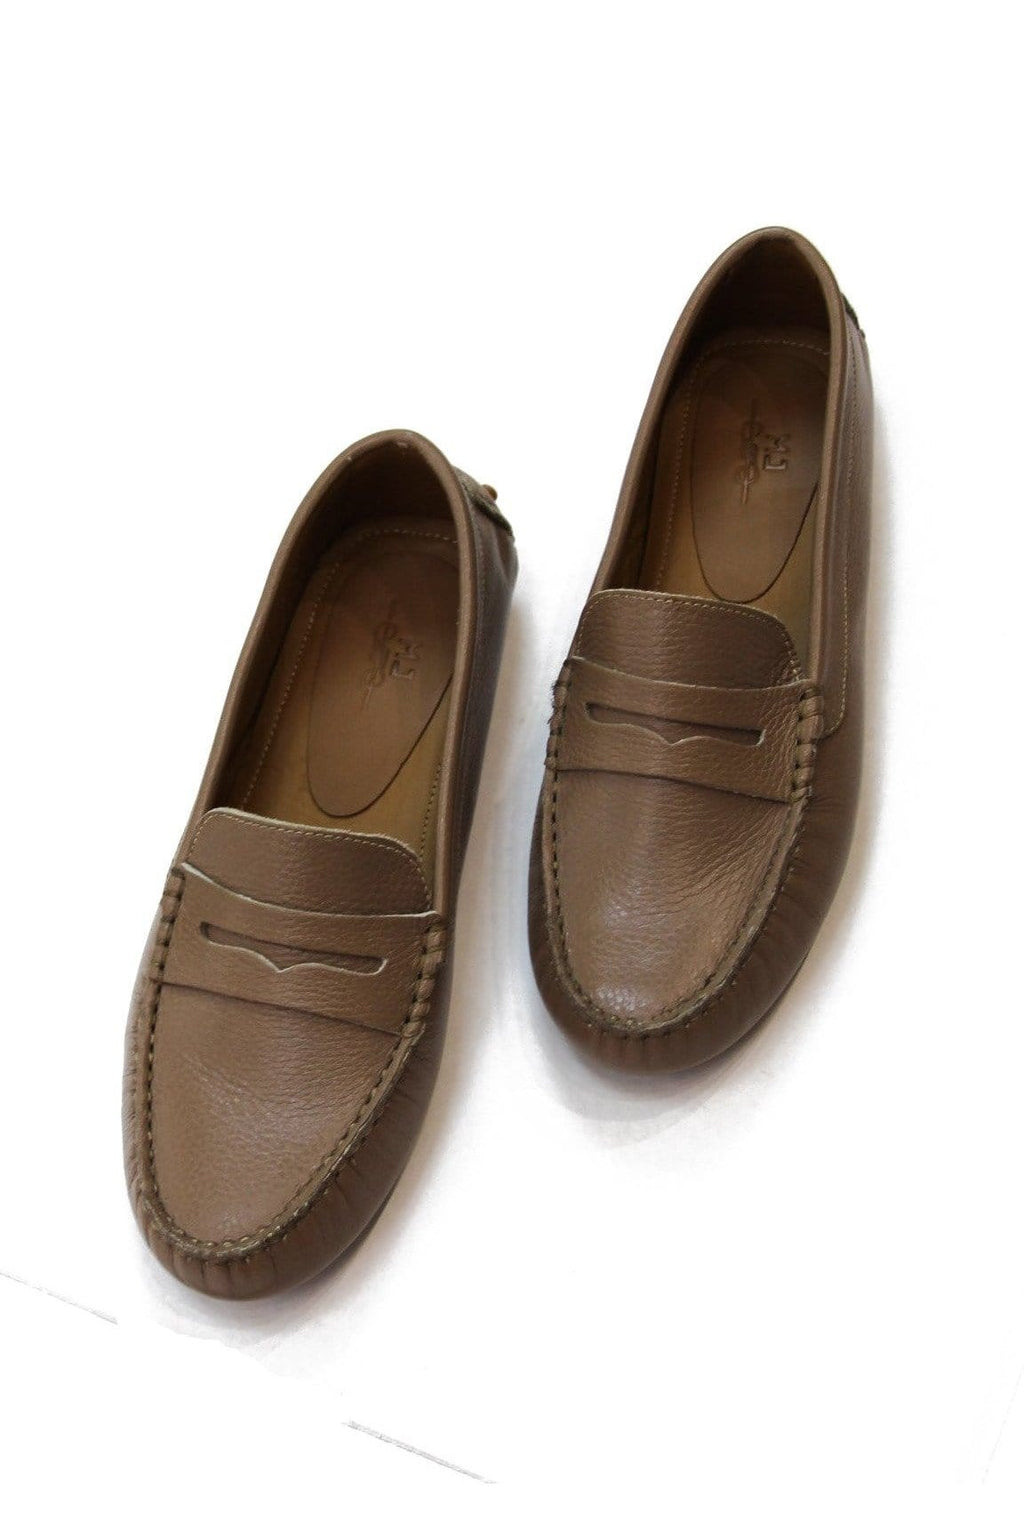 Lisa Leather Loafer in Taupe - Himelhoch's